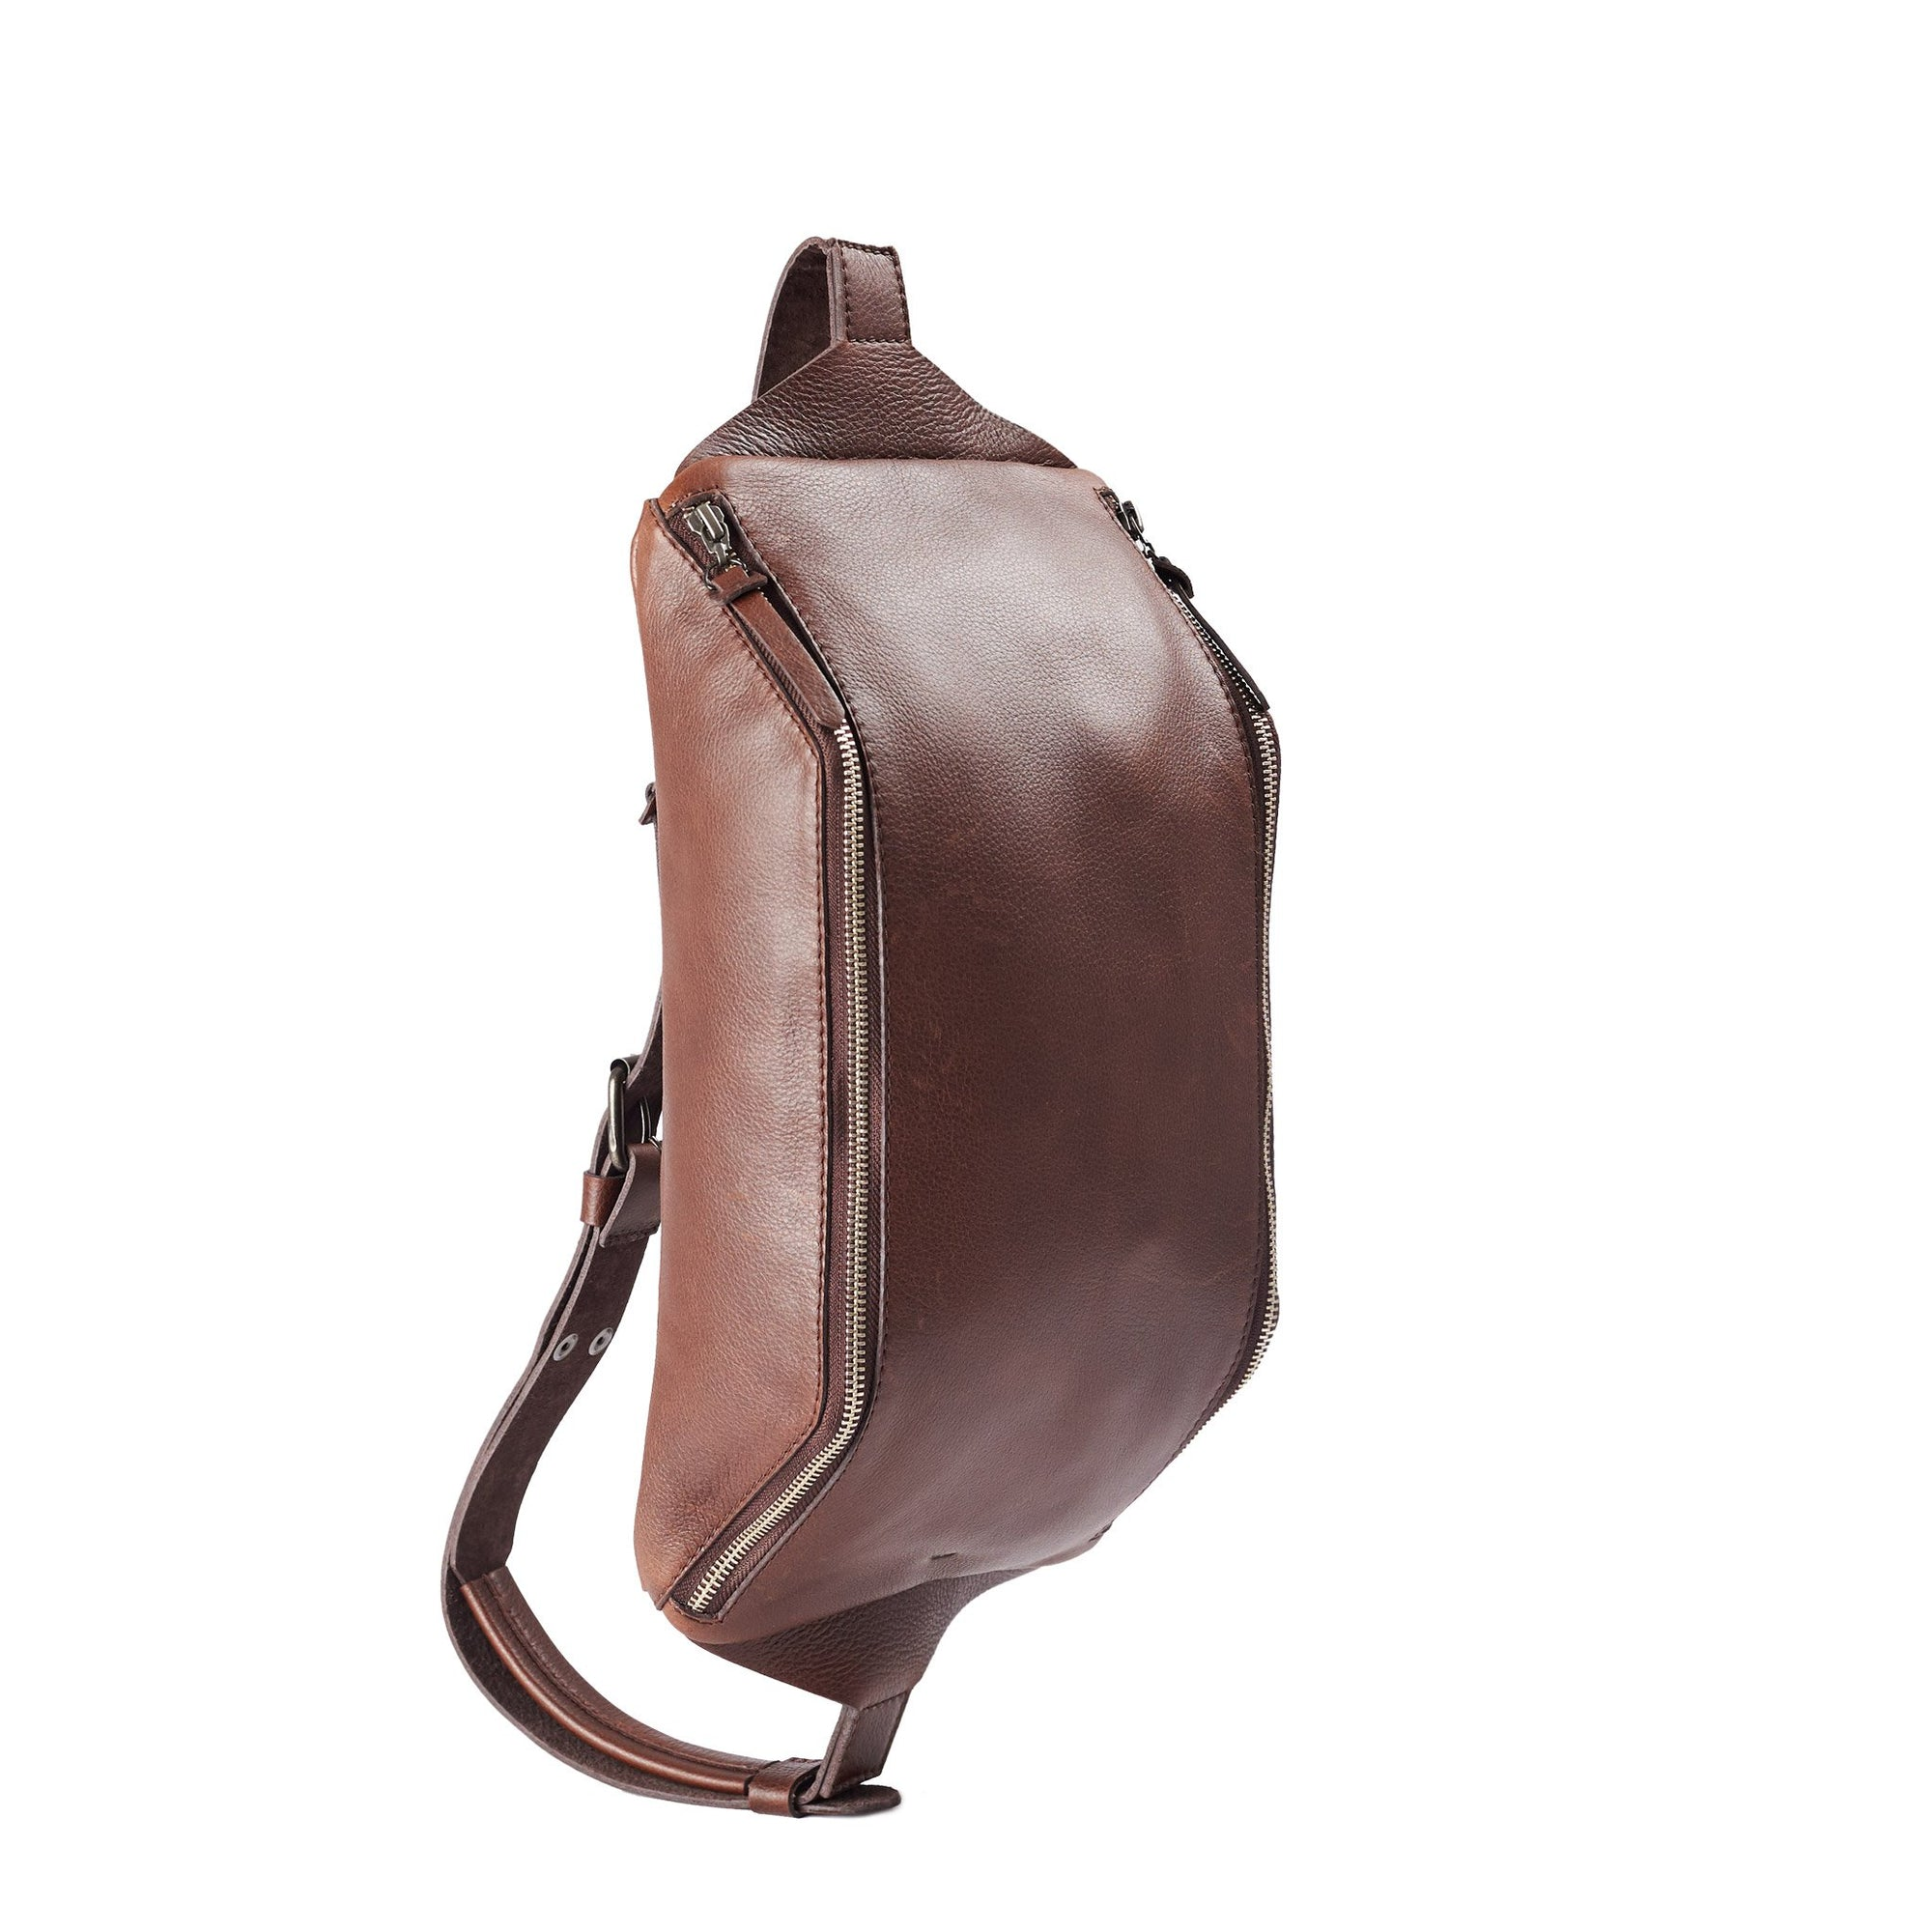 Brown Fenek sling bag backpack made by Capra Leather. Frontal view of small backpack with single strap.